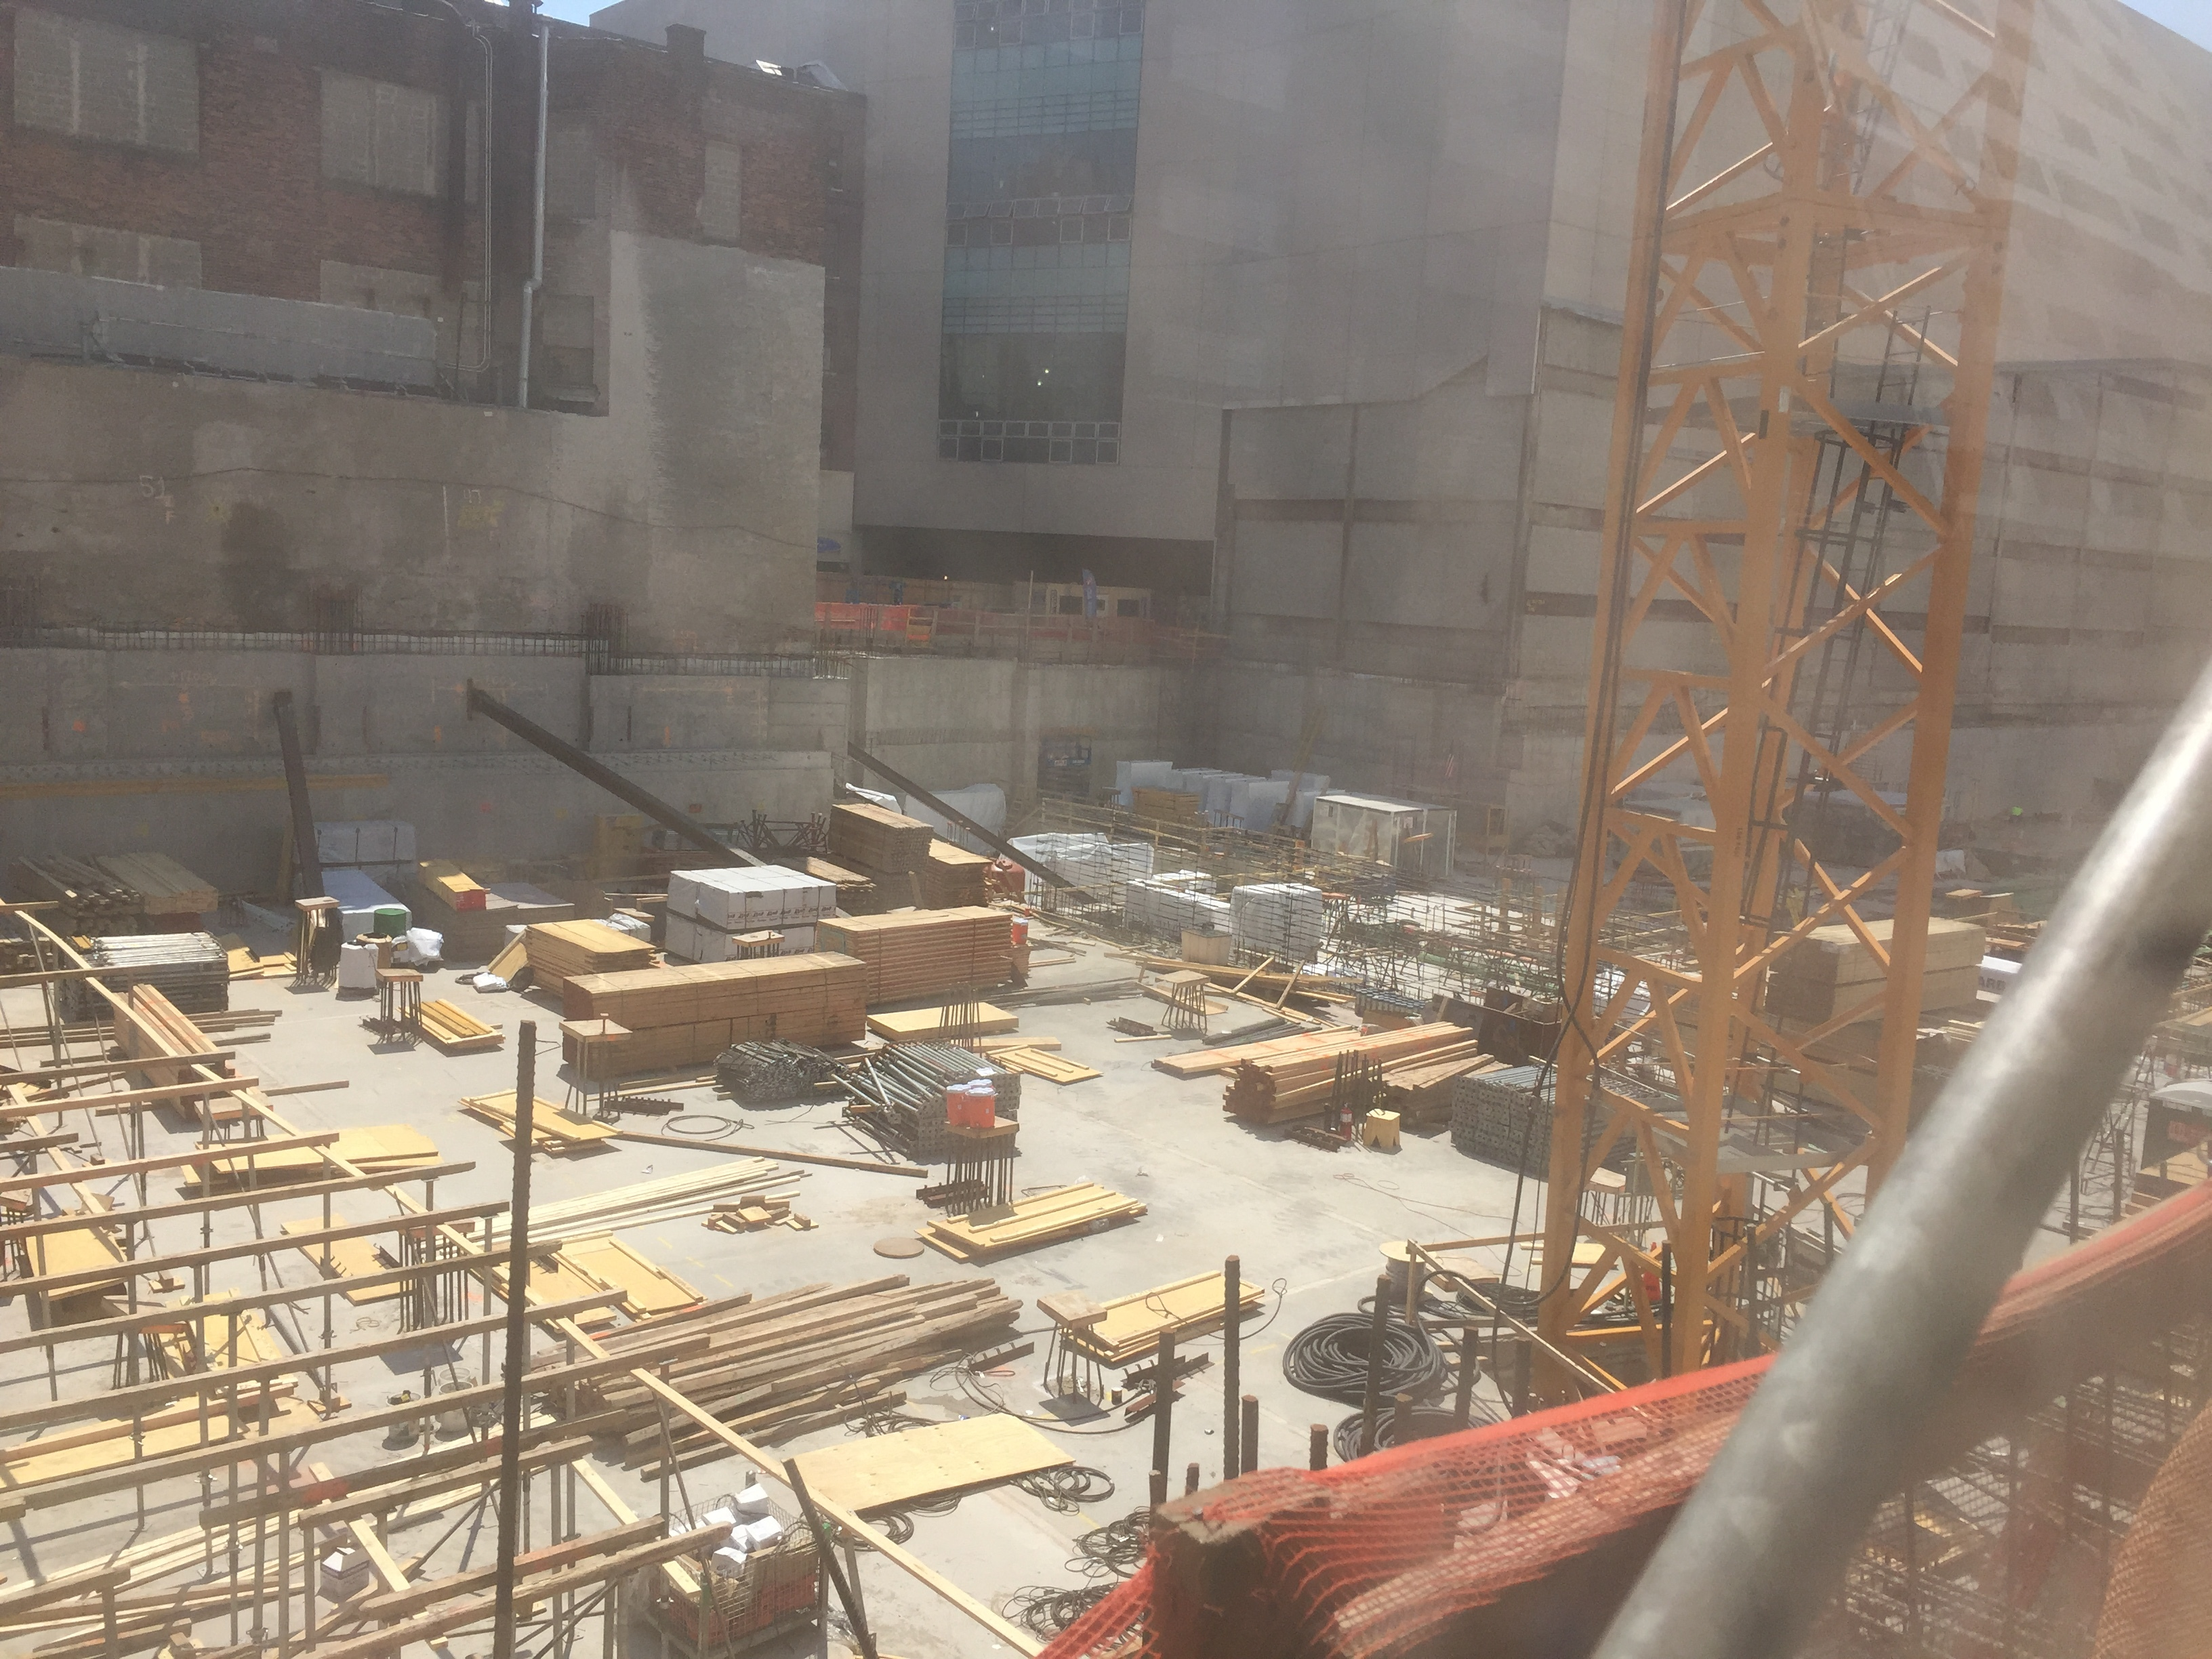 Work at 606 West 57th Street, June 25, 2016. Credit: JC_Heights